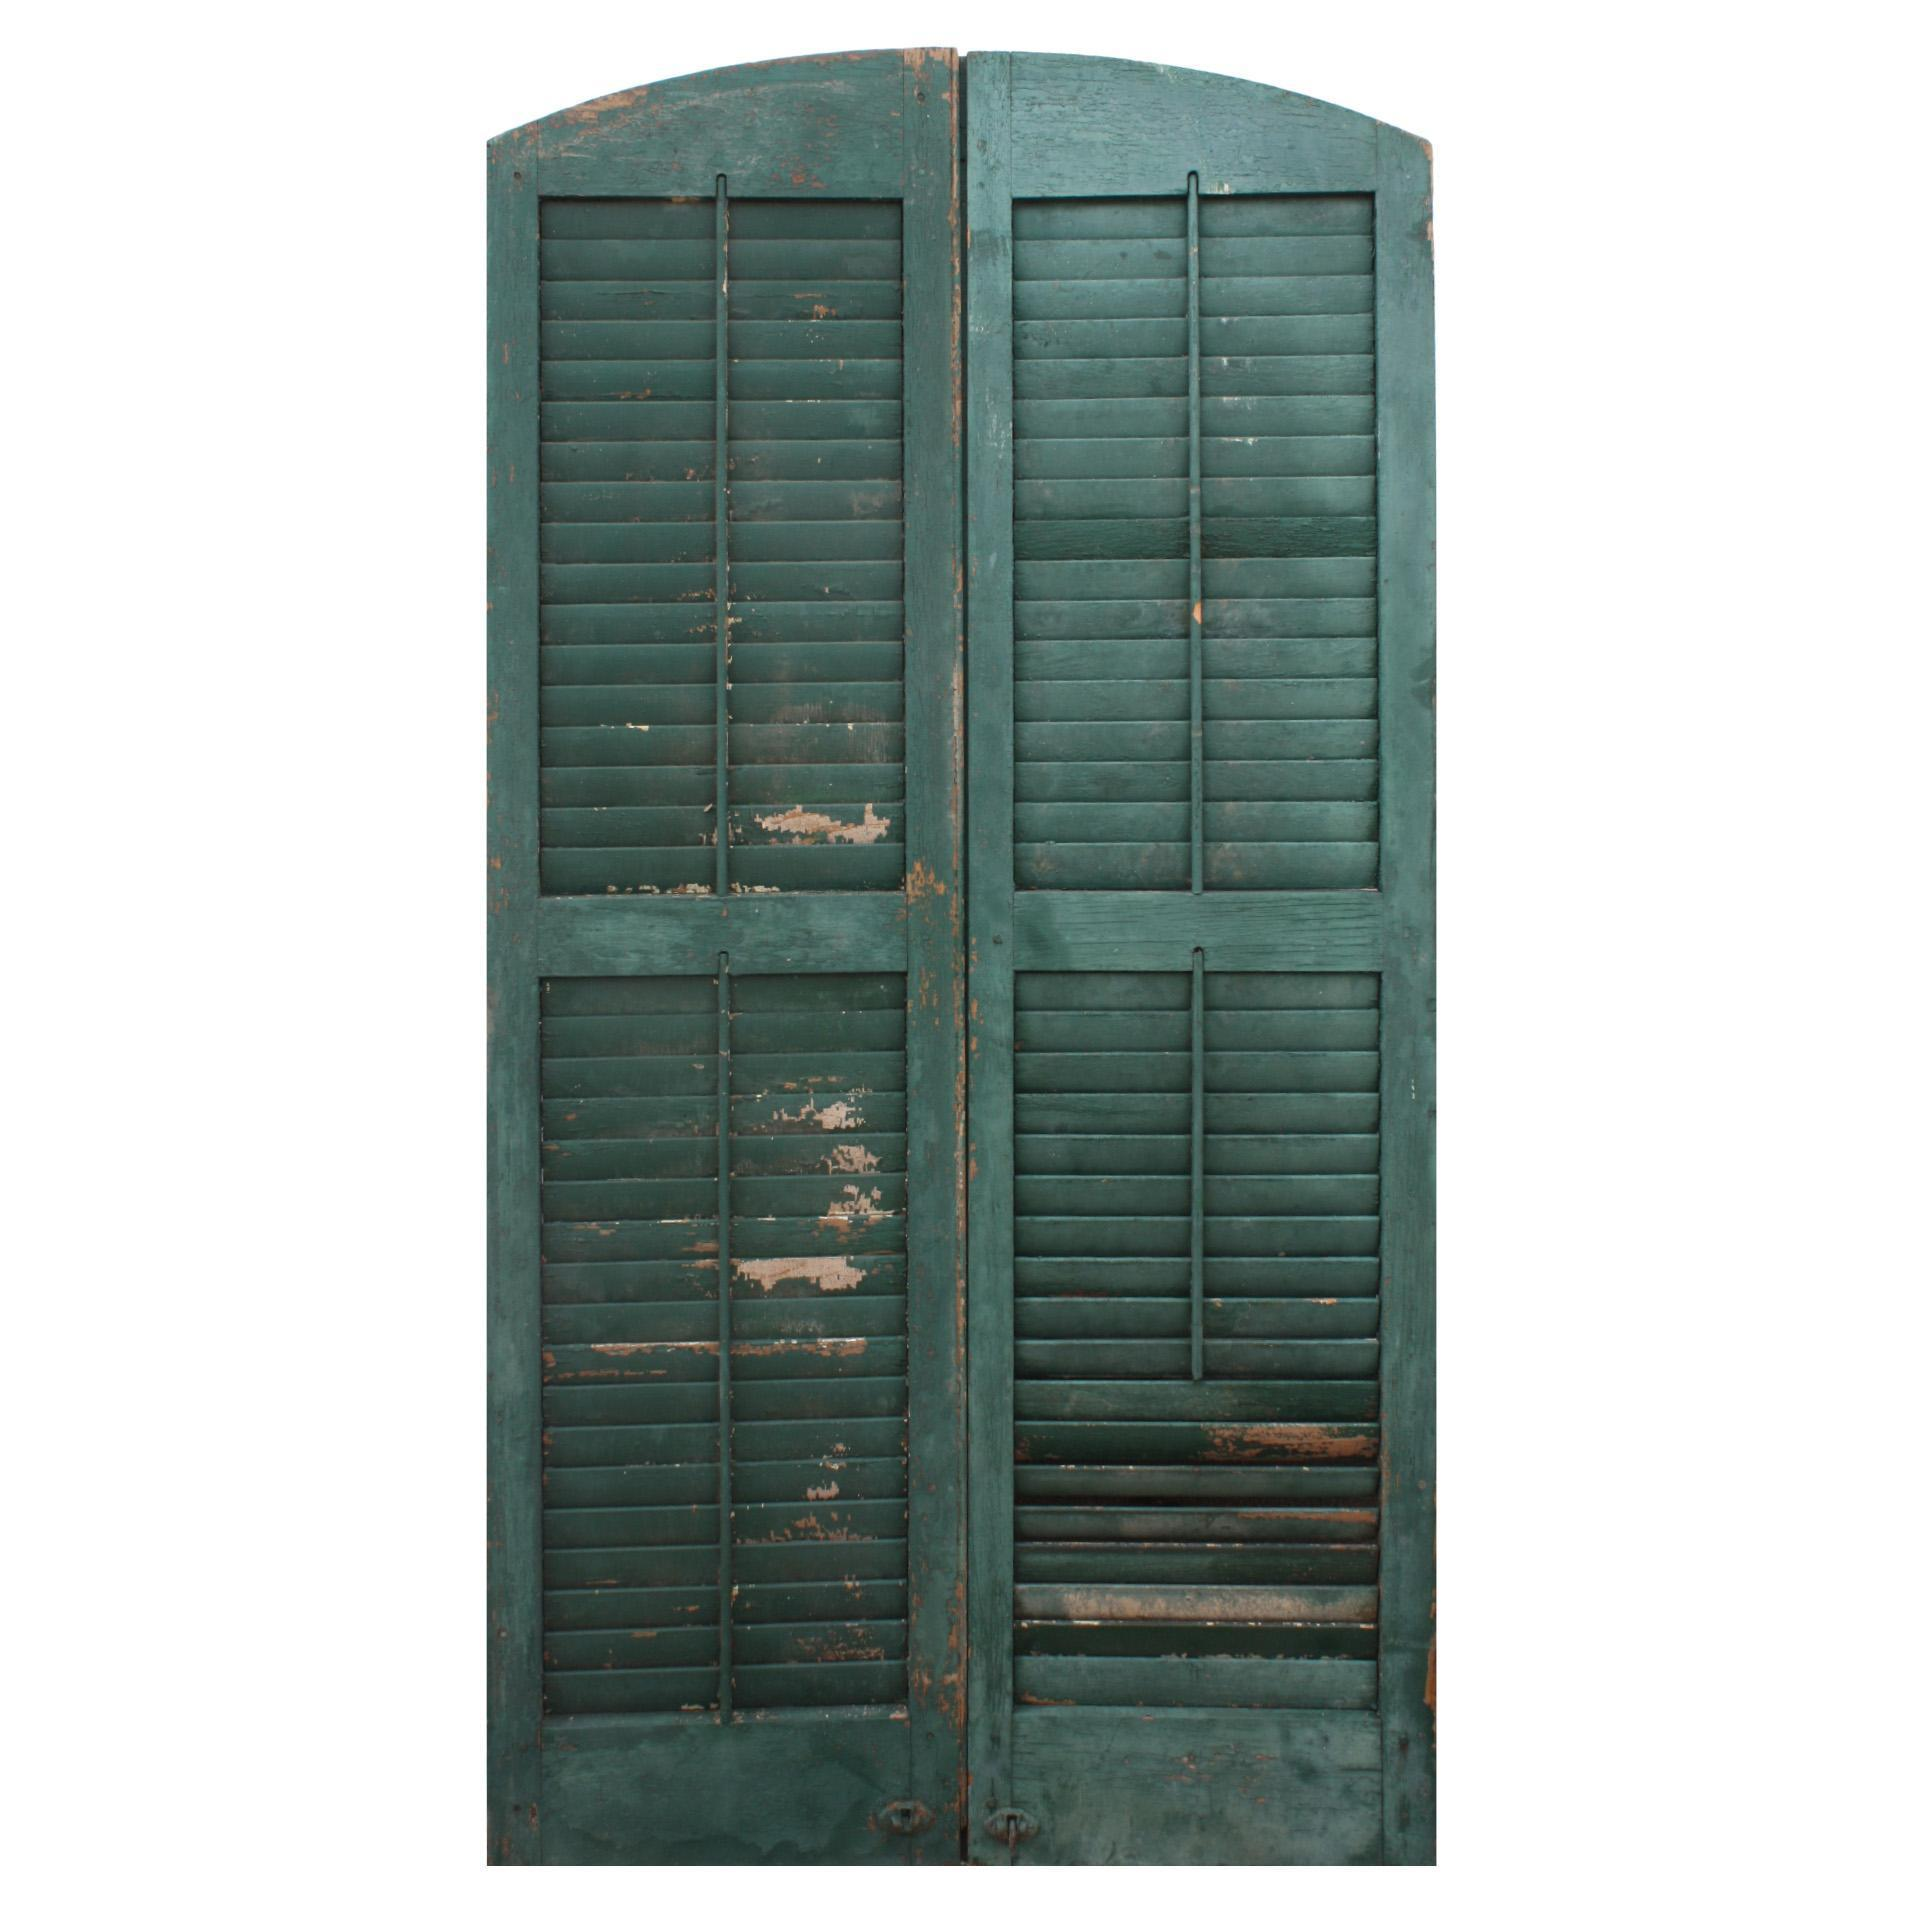 Salvaged Arched Wood Shutters, Early 1900s